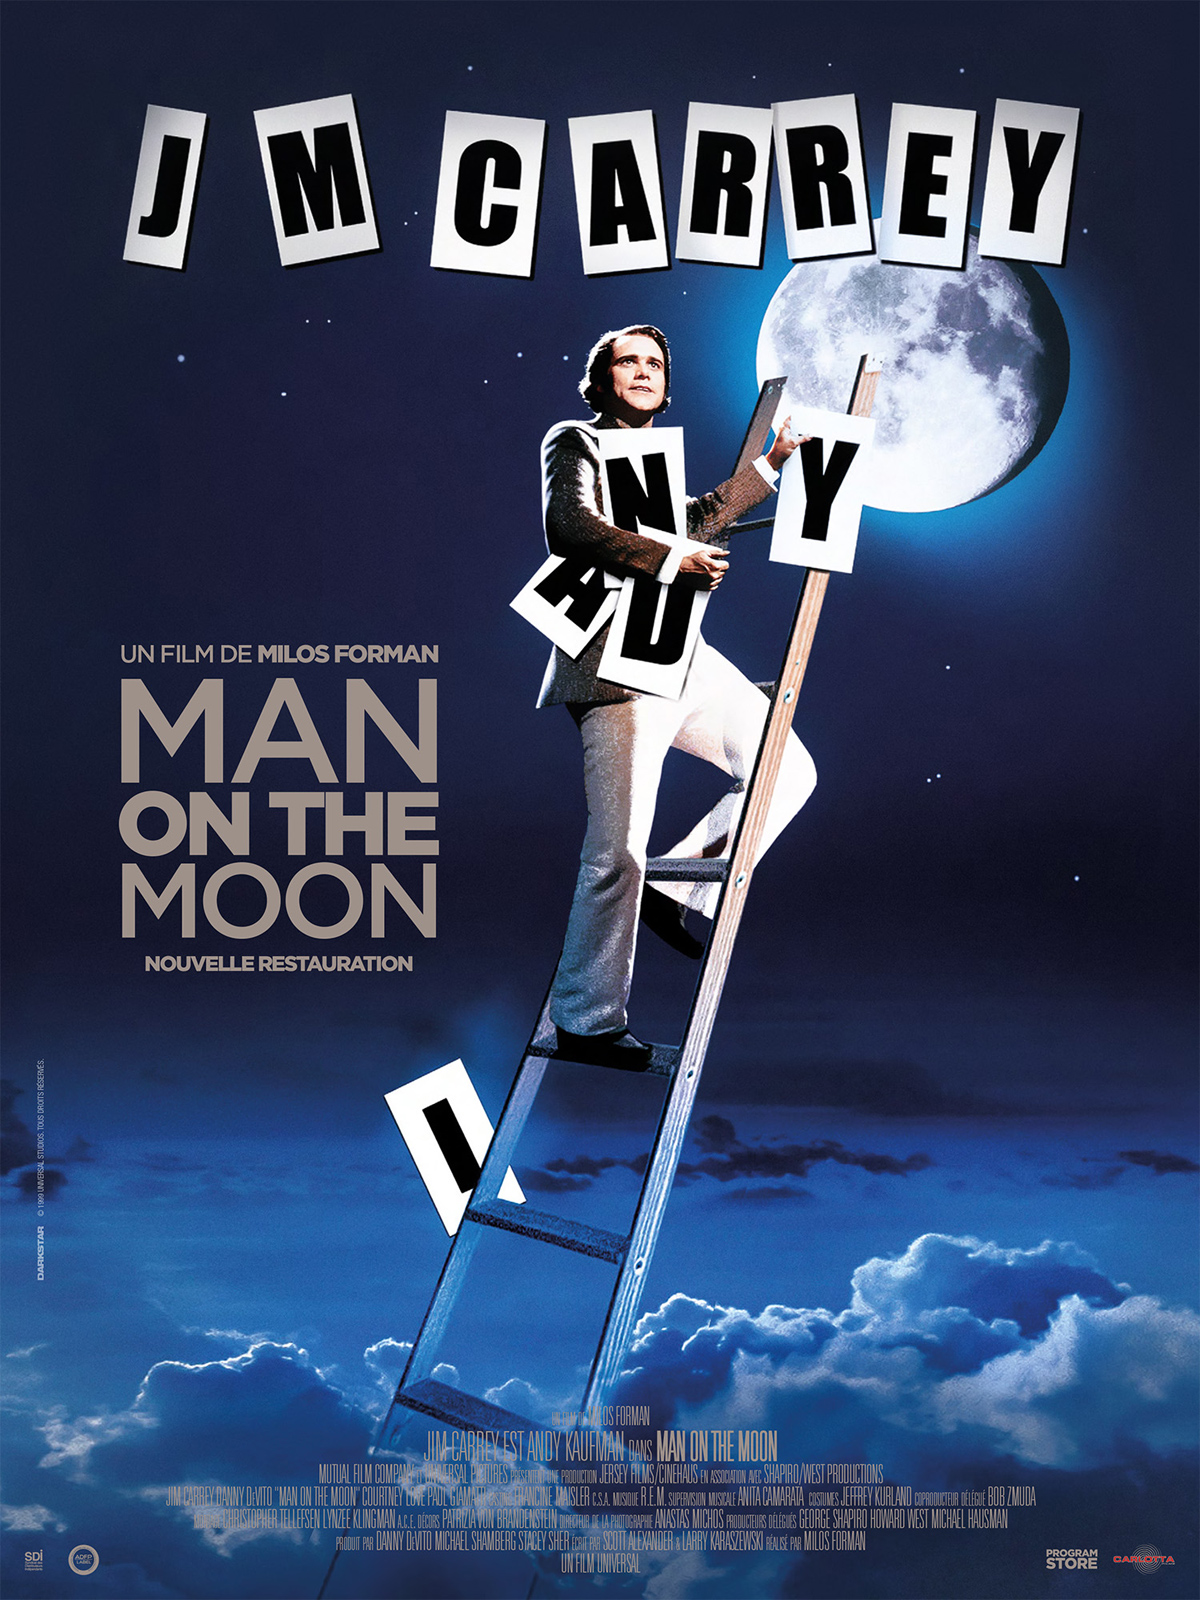 the man on the moon Amazoncom: man on the moon: jim carrey, danny devito, courtney love, paul giamatti, vincent schiavelli, peter bonerz, jerry lawler, gerry becker, leslie lyles .